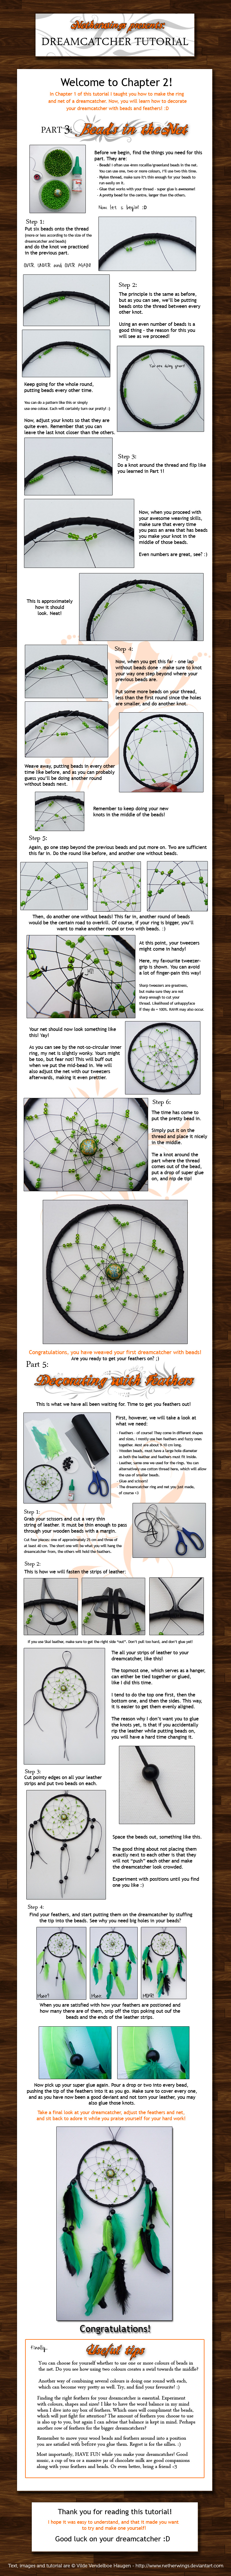 Dreamcatcher tutorial: Ch. 2 by netherwings